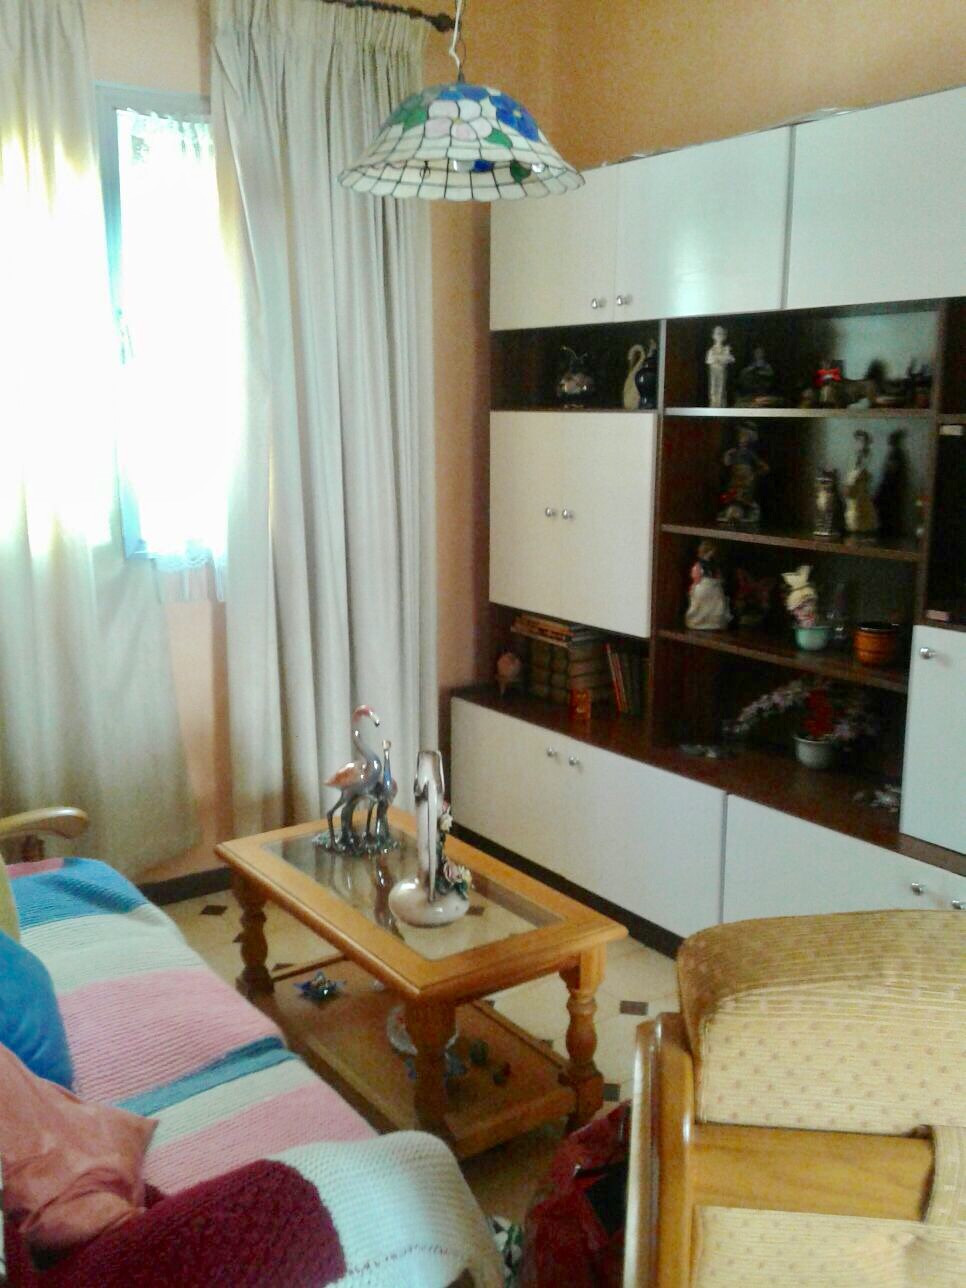 Opportunity, 3 bedroom apartment, 1 bathroom, living room kitchen, very bright, well located near bu,Spain